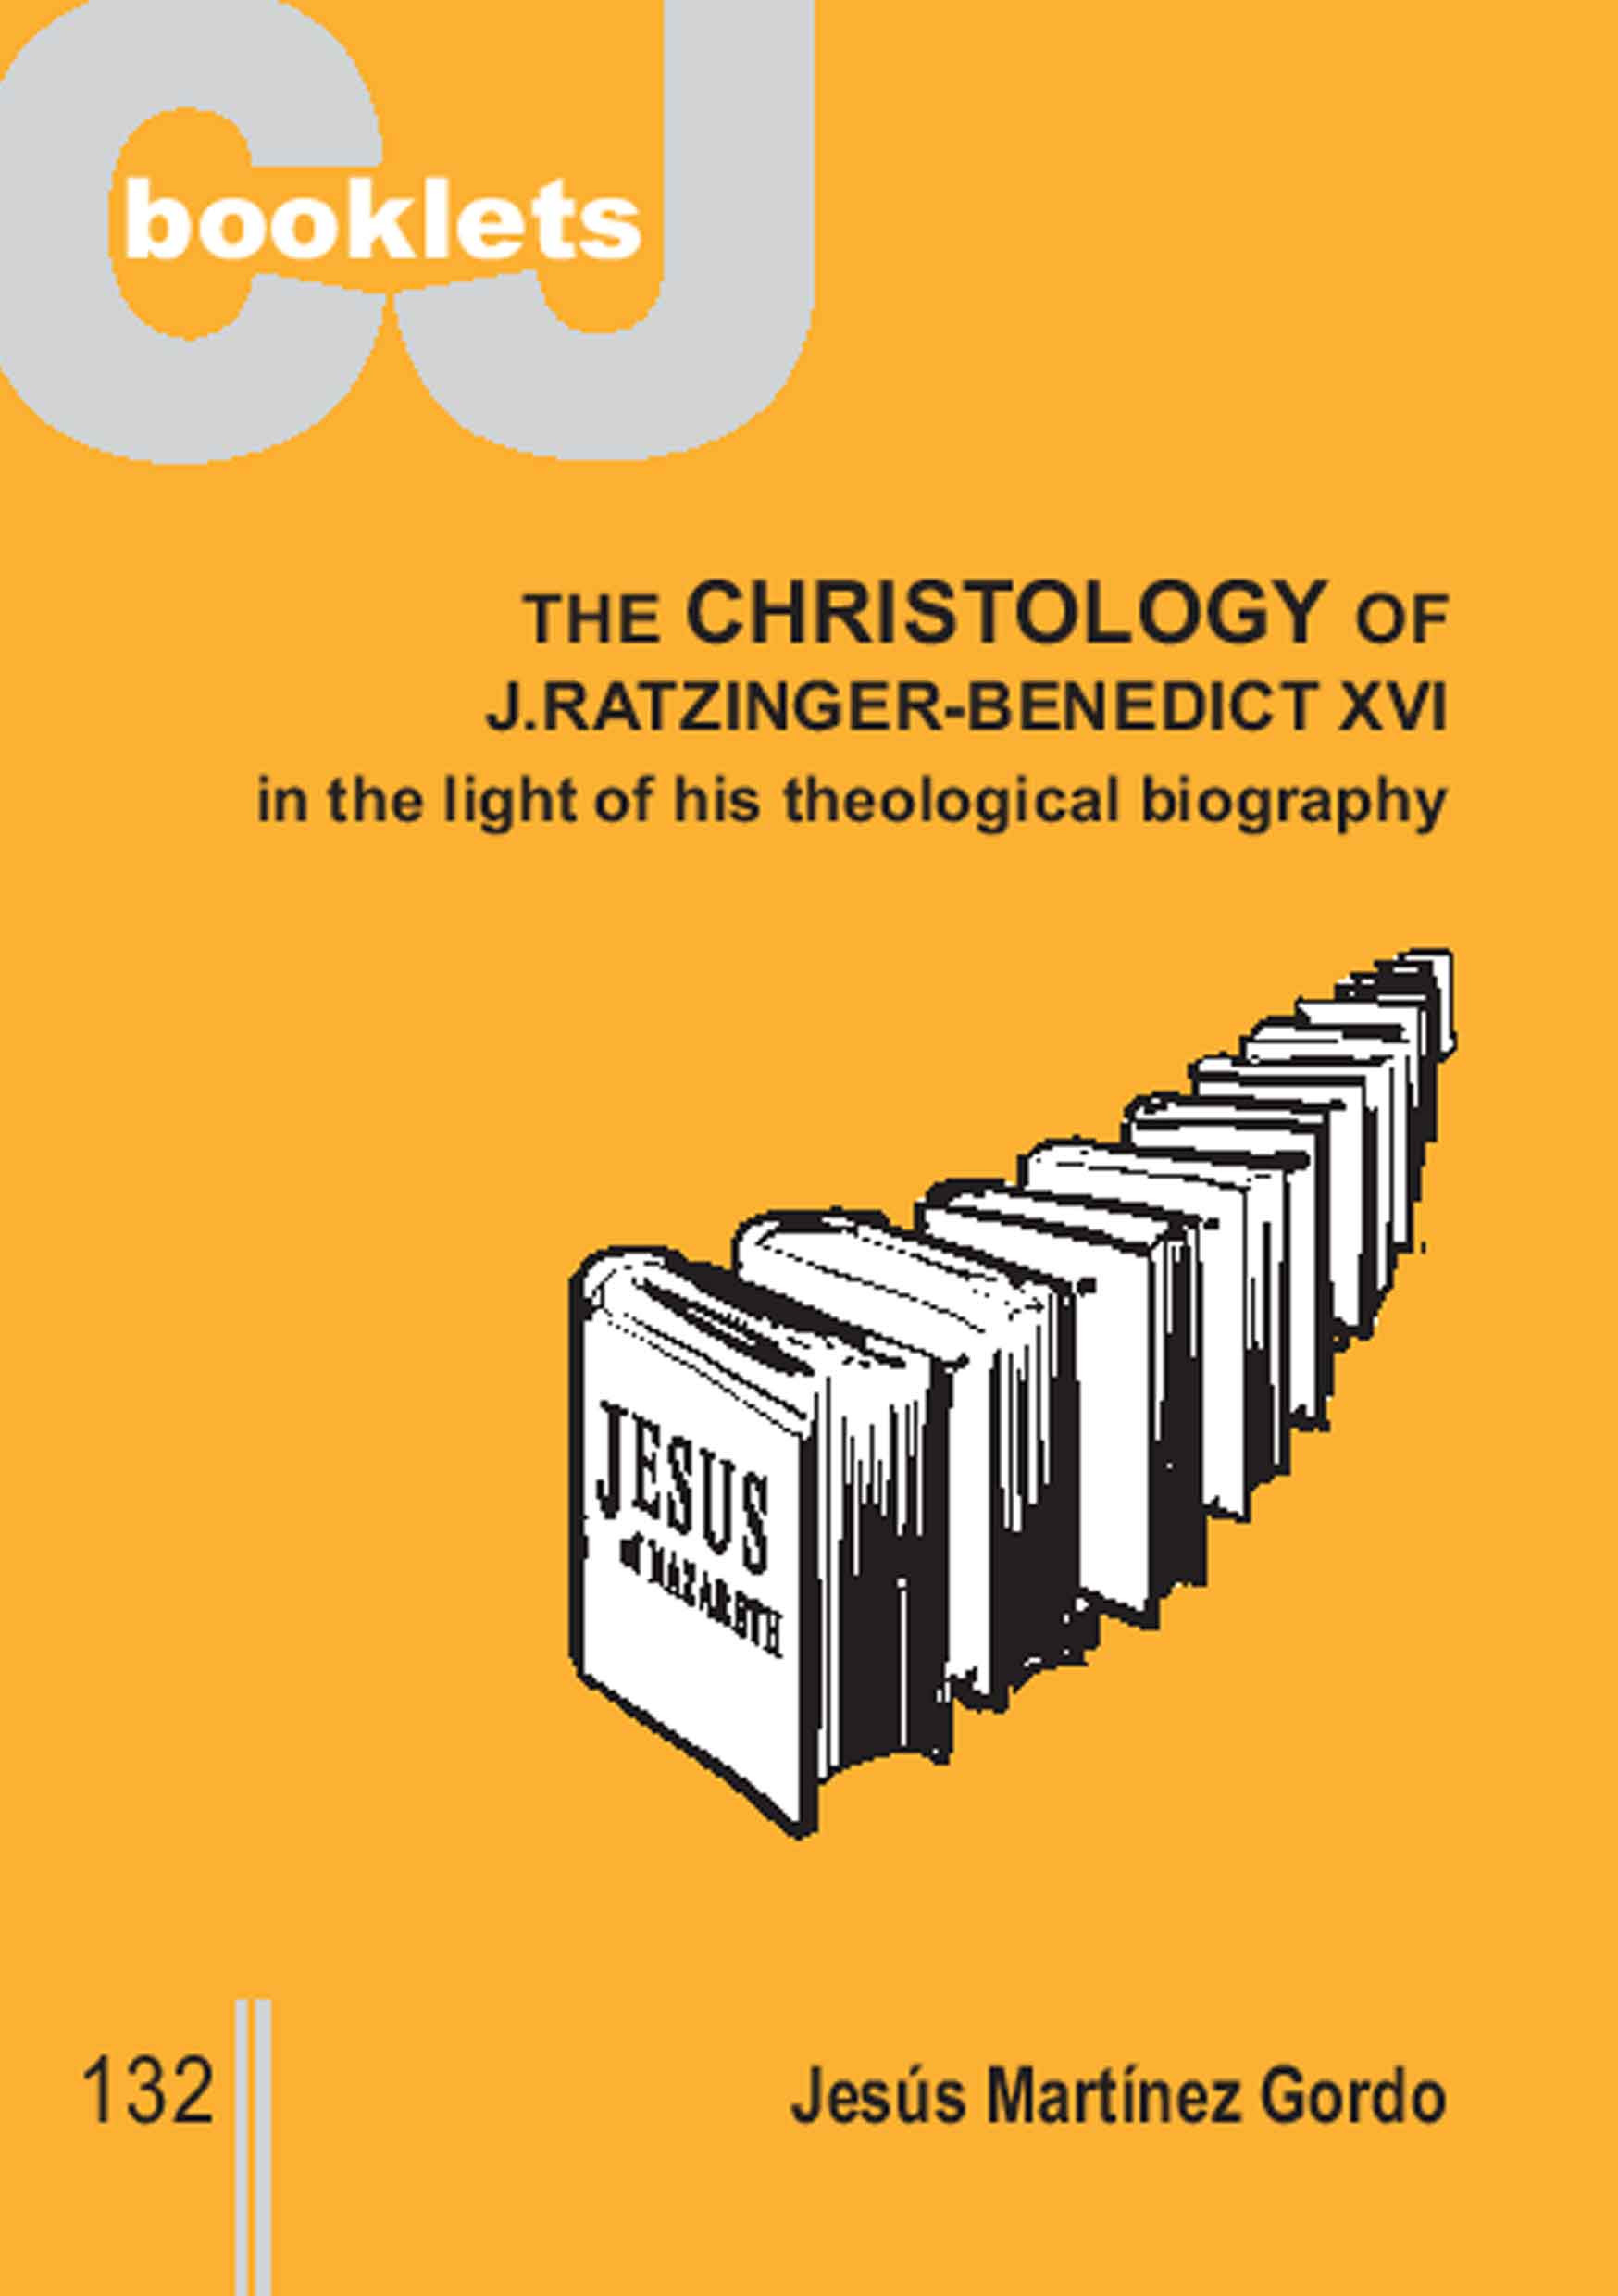 the incarnation collected essays in christology This book gathers together essays, published and unpublished, in which brian hebblethwaite explores and defends the christian doctrine of the incarnation against its modern critics.